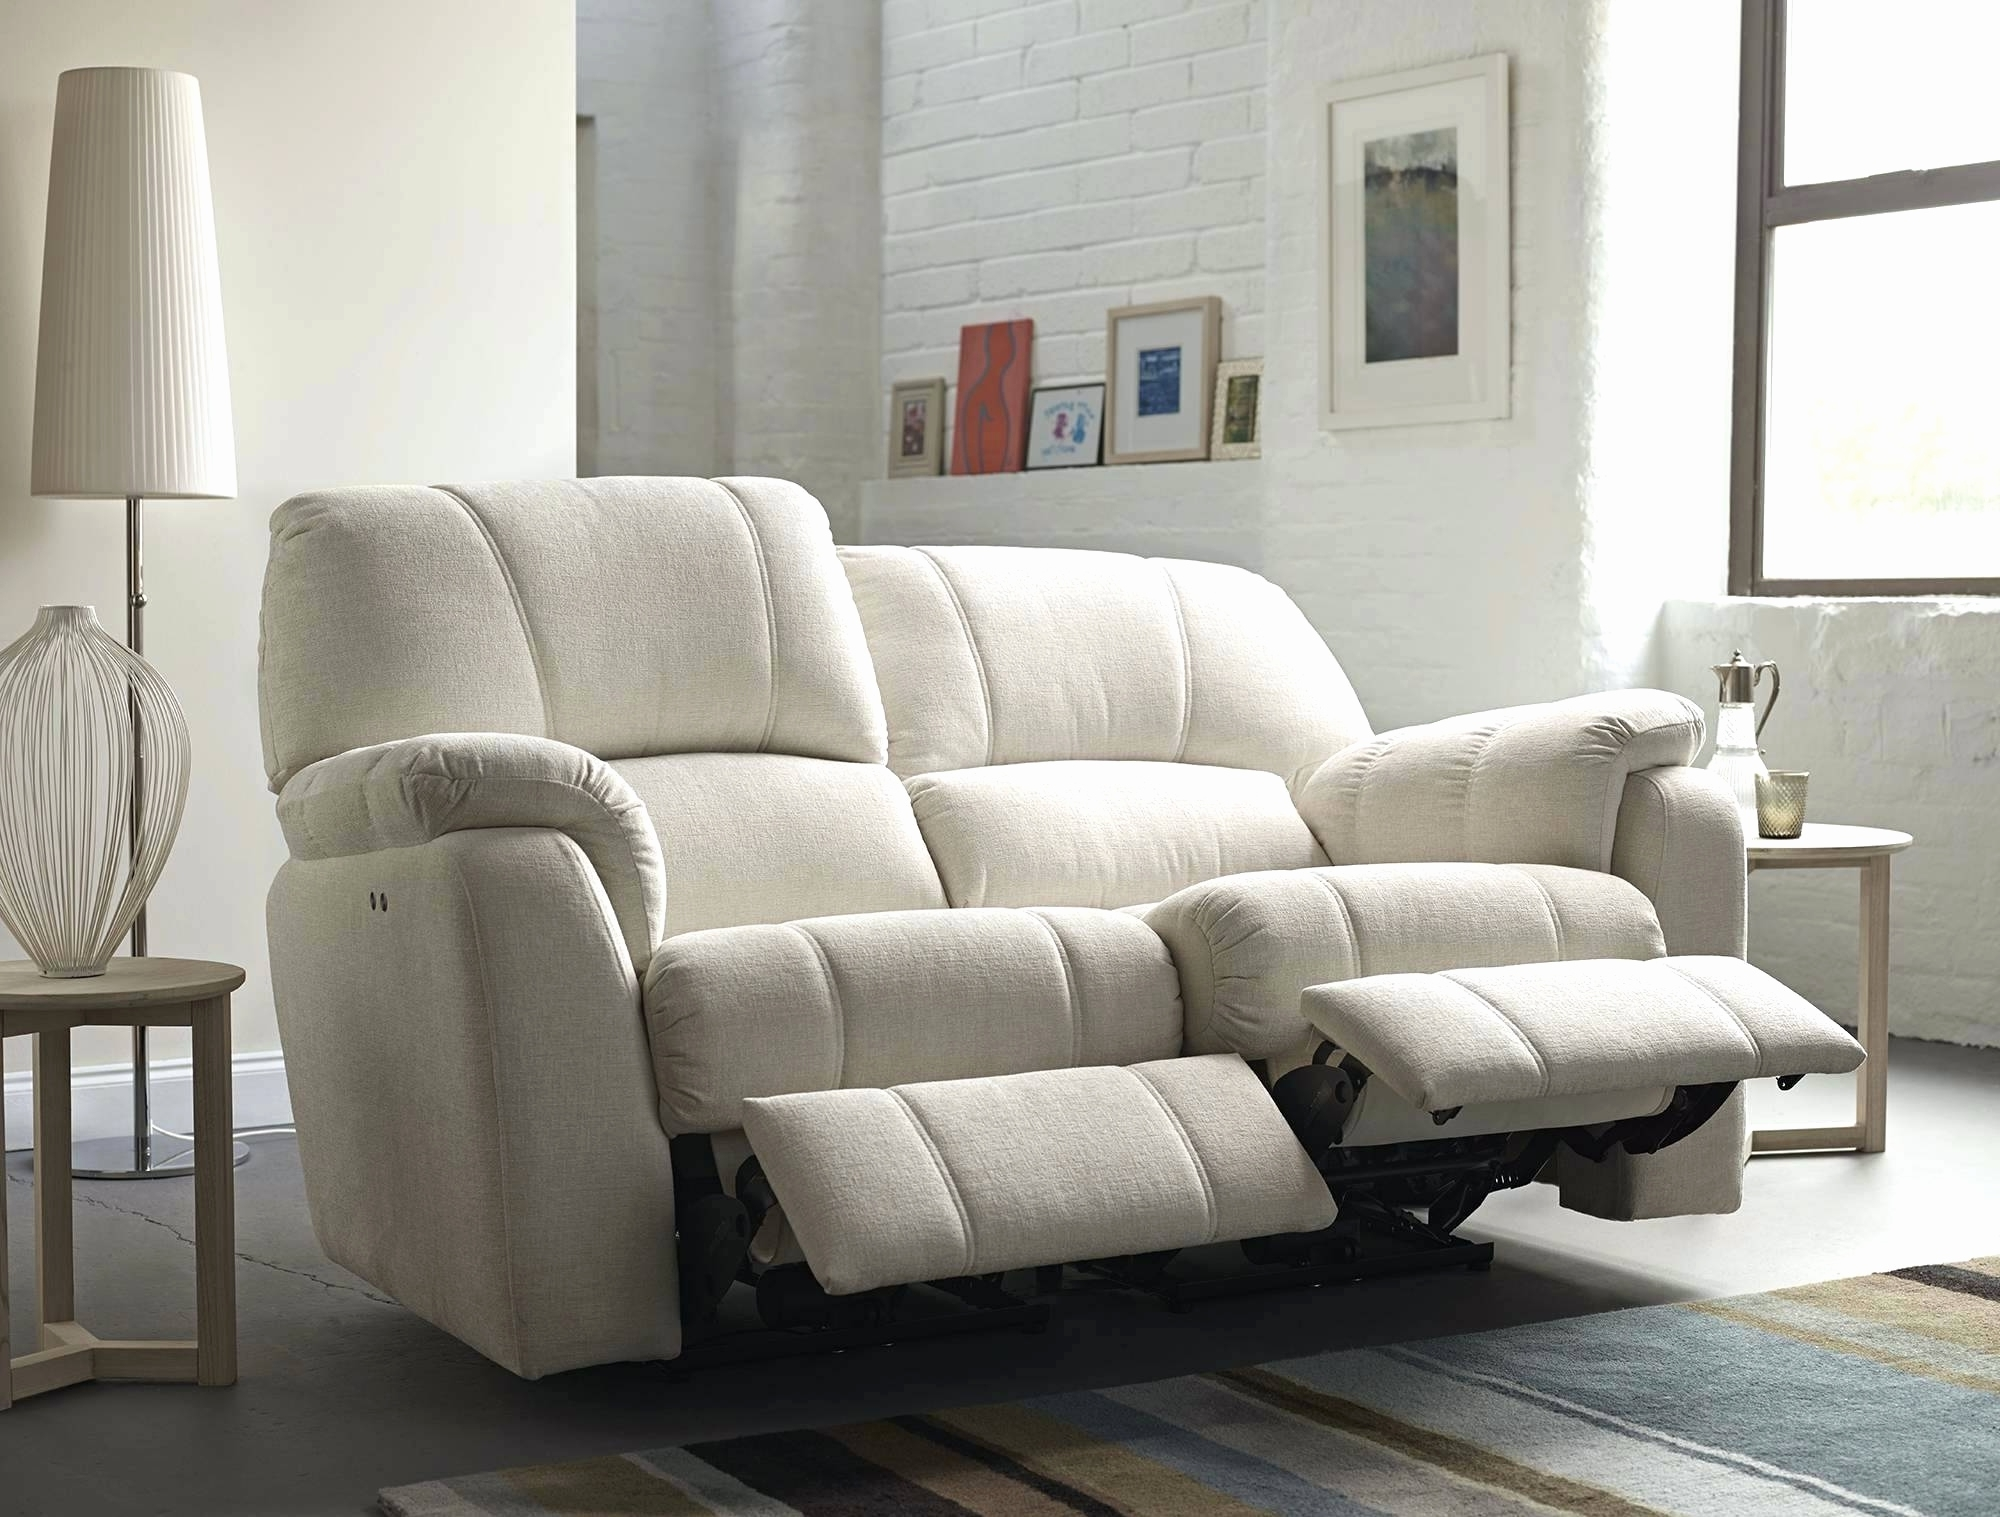 Current 2 Seat Recliner Sofas Regarding Elegant 2 Seater Couches For Sale 2018 – Couches And Sofas Ideas (View 20 of 20)